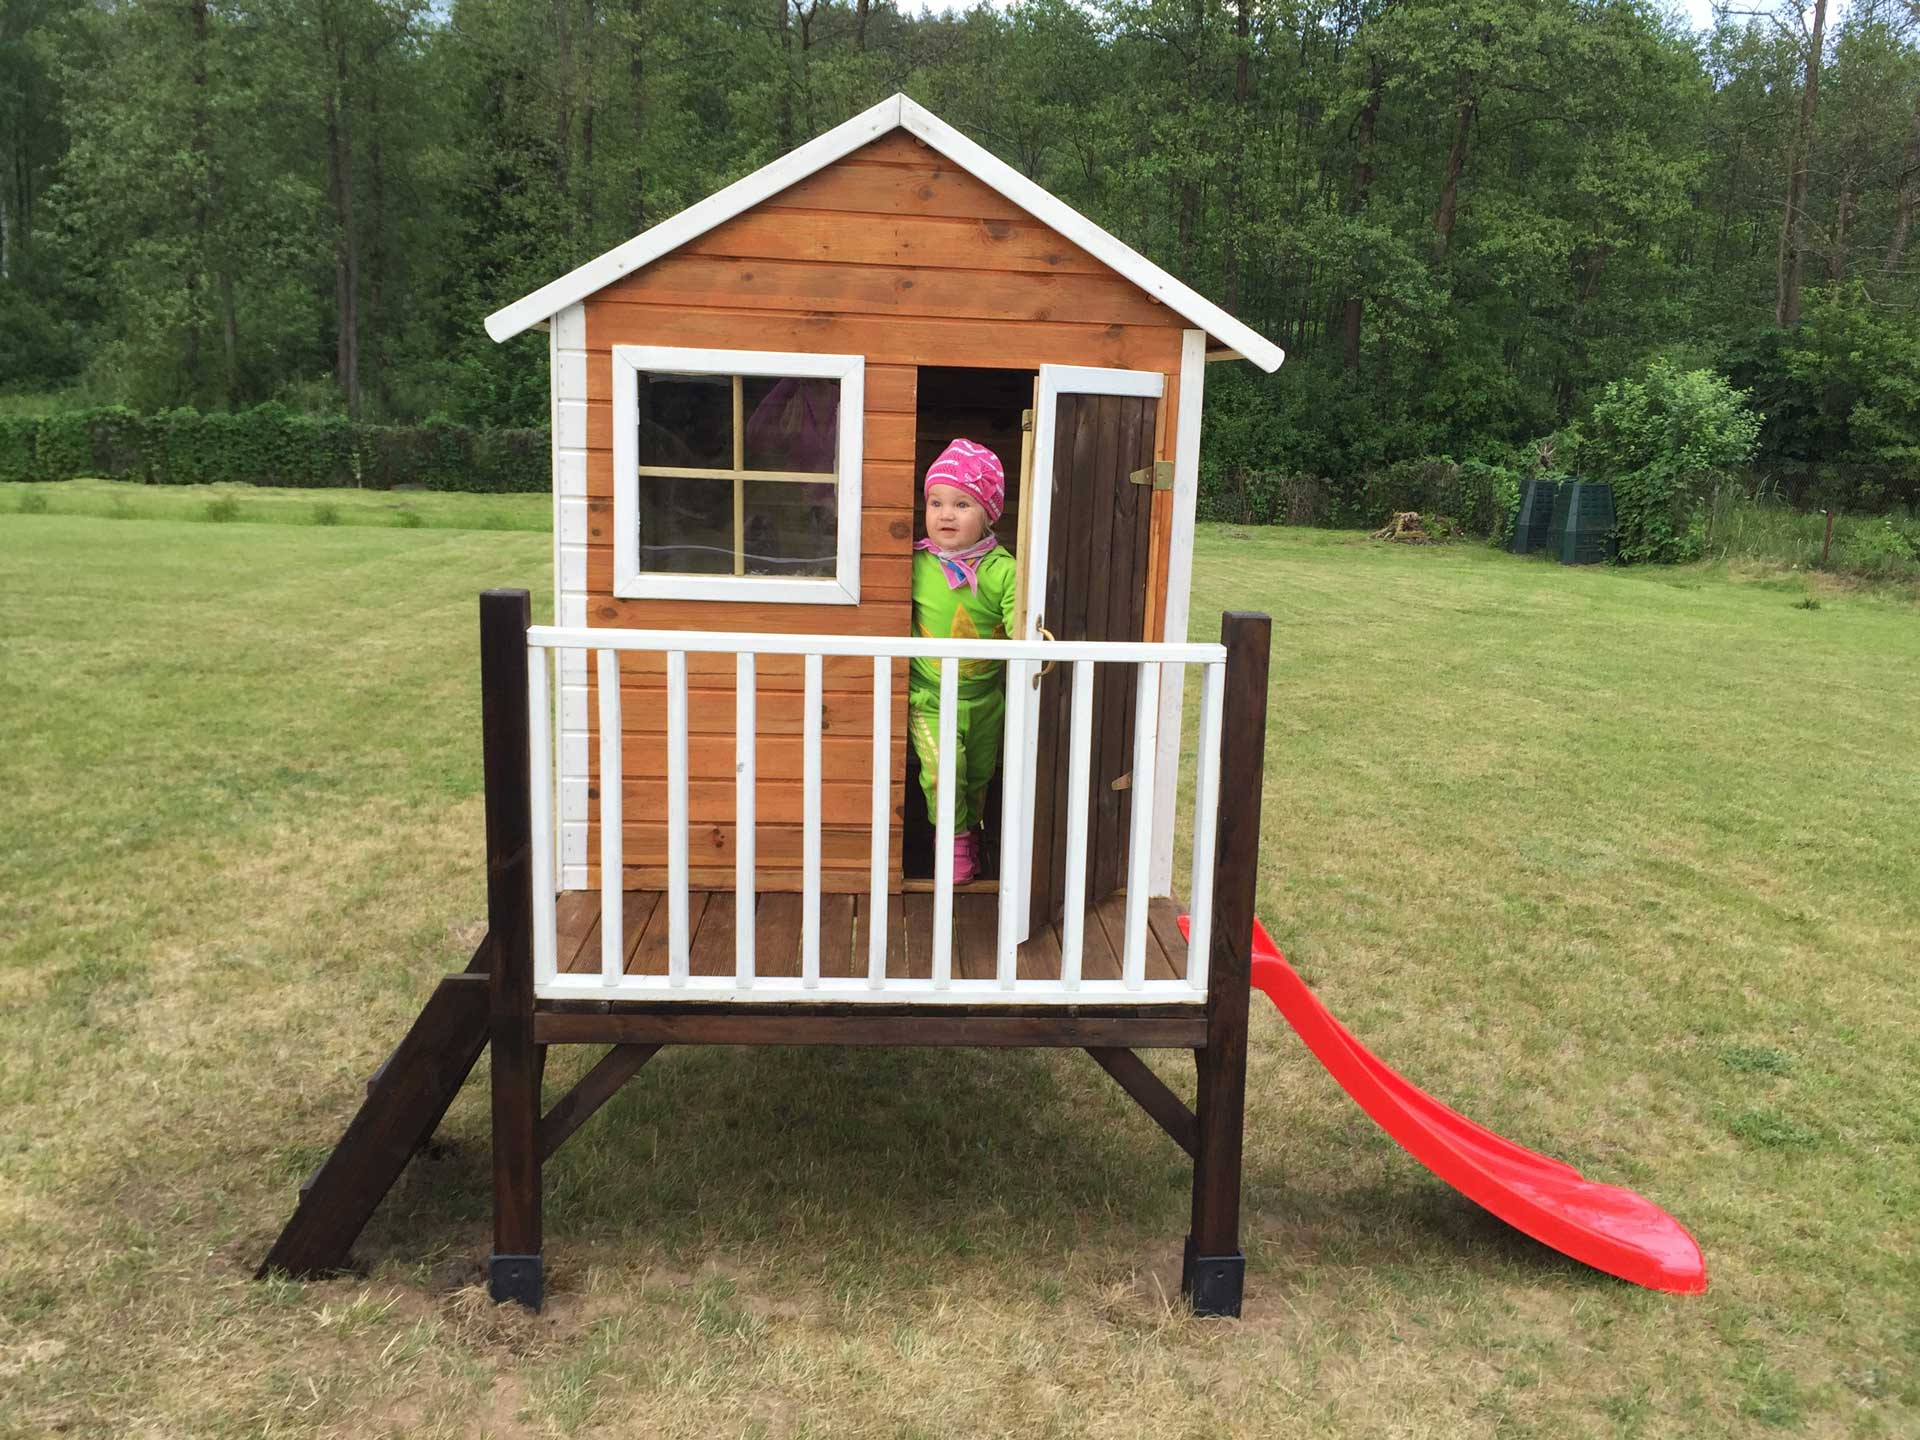 Childrens Wooden Playhouse žiogelis 4iq